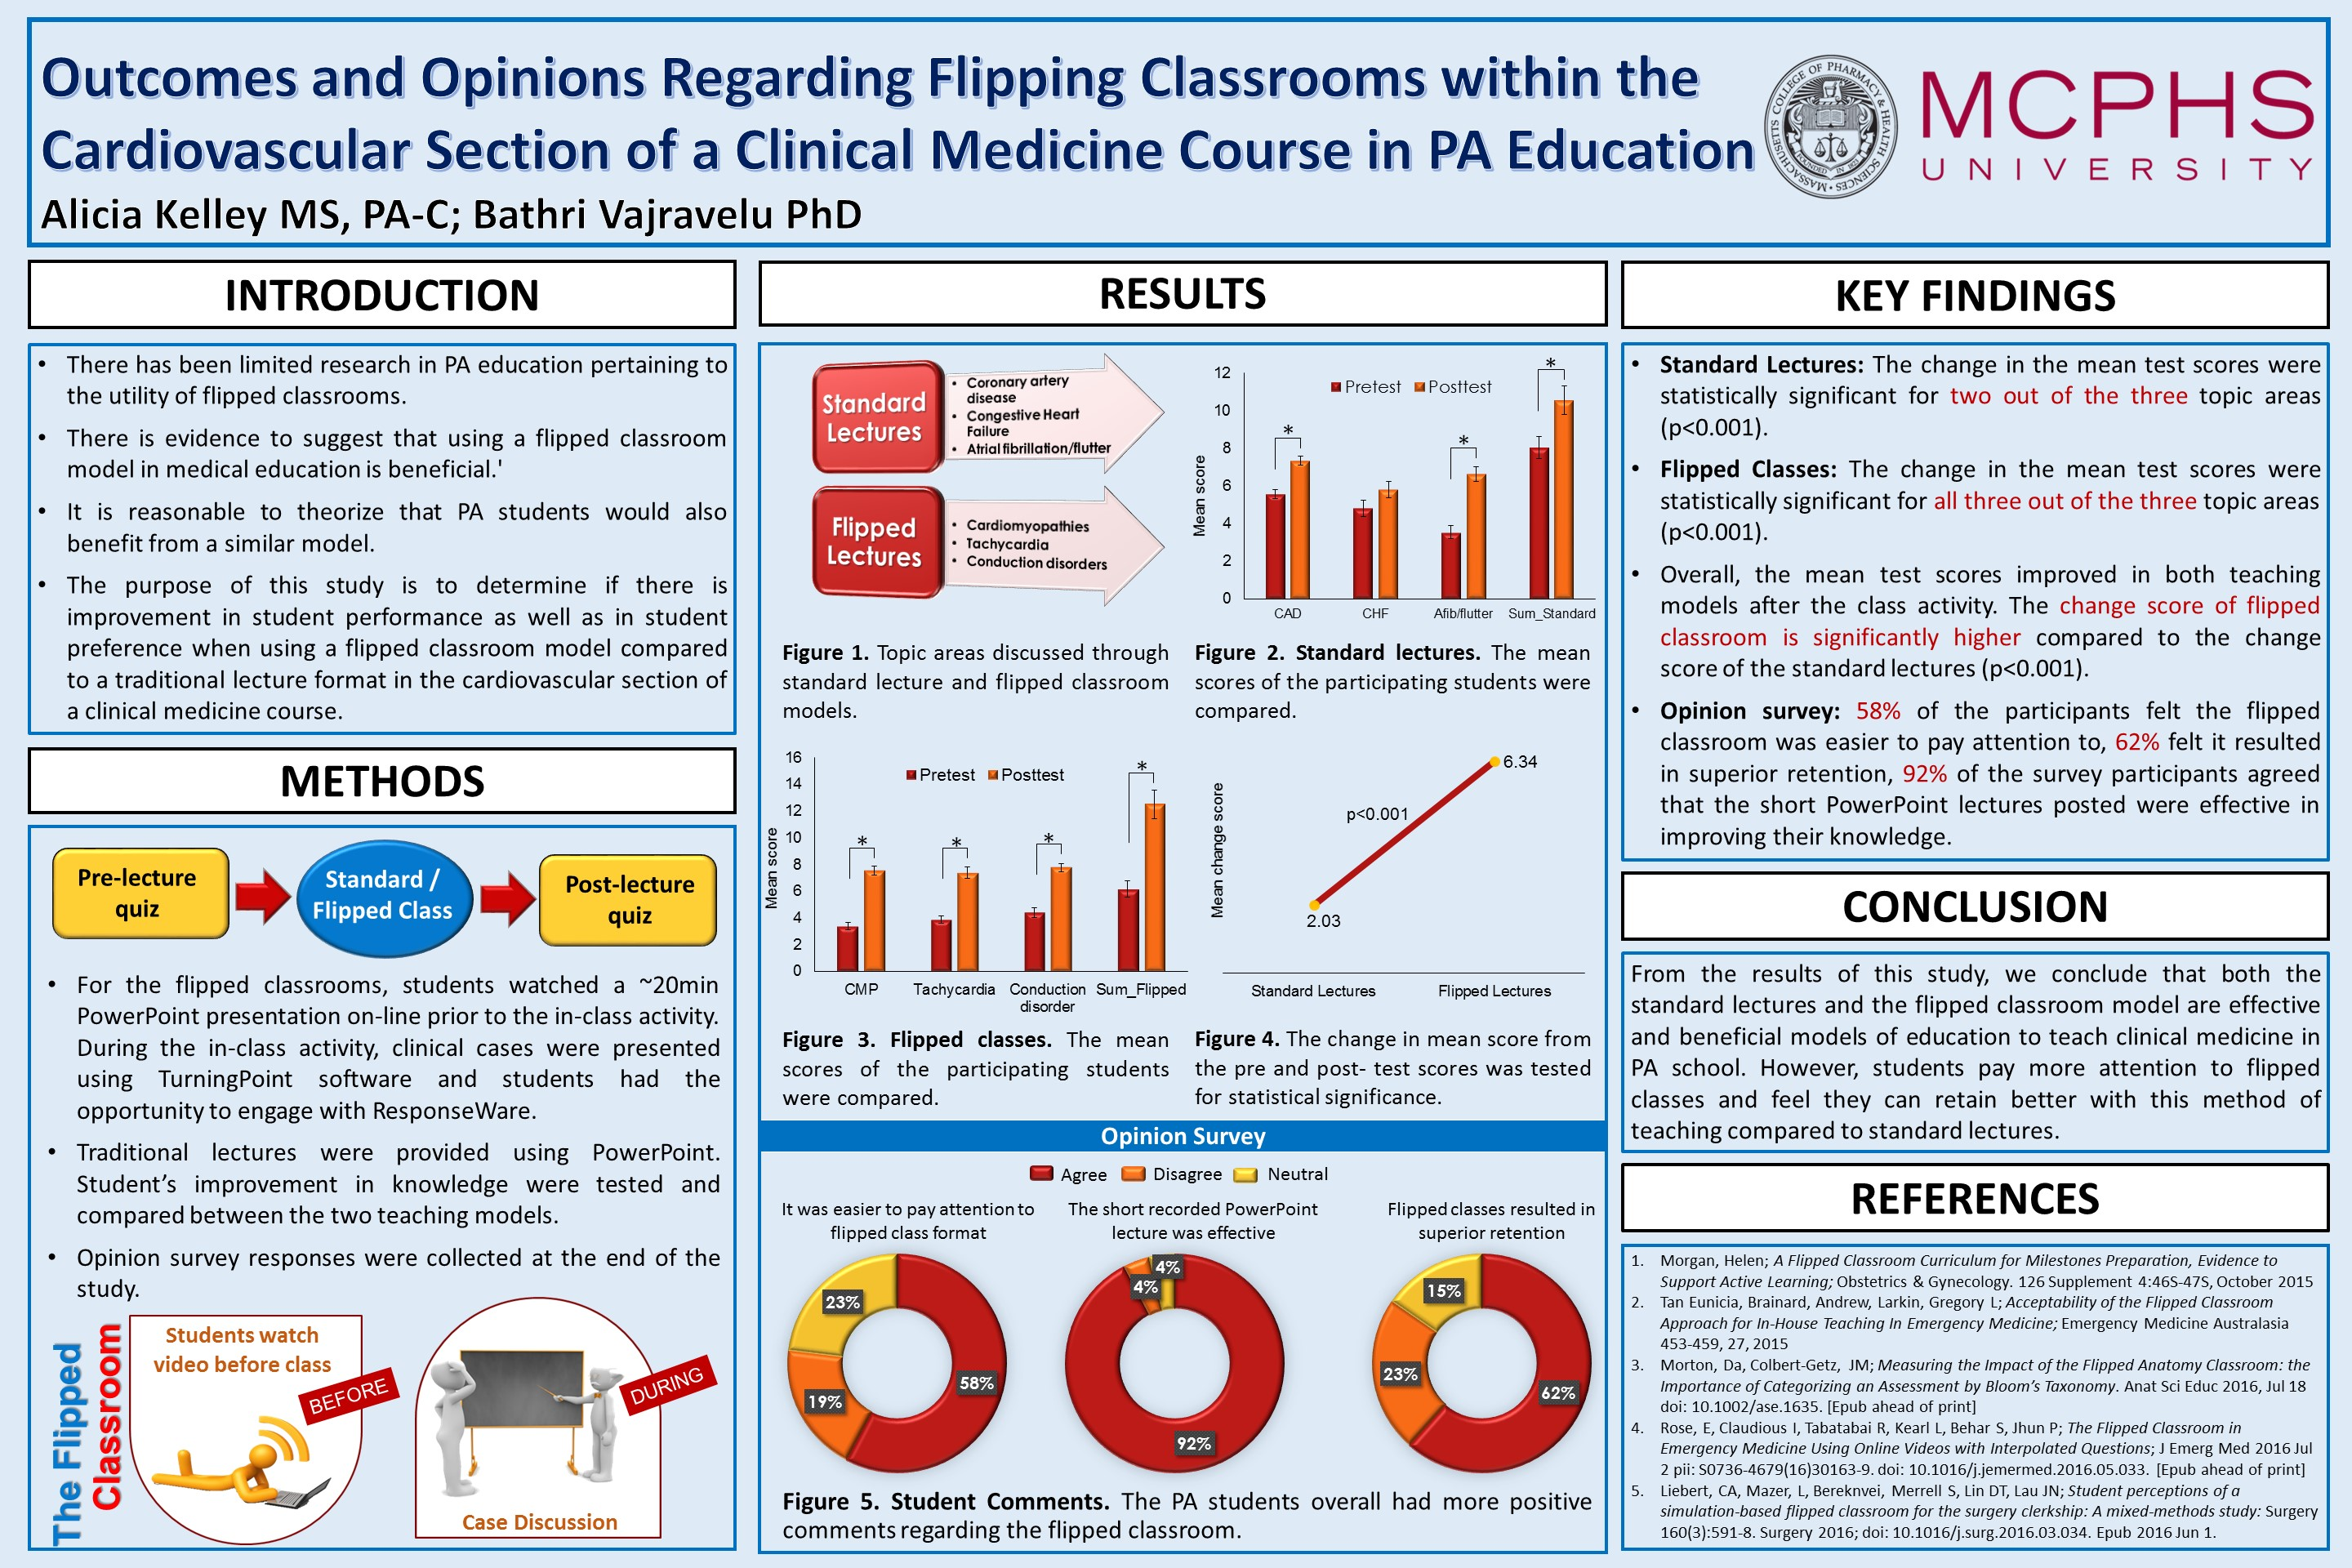 Outcomes and Opinions Regarding Flipping Classrooms within the Cardiovascular Section of a Clinical Management Course in PA Education